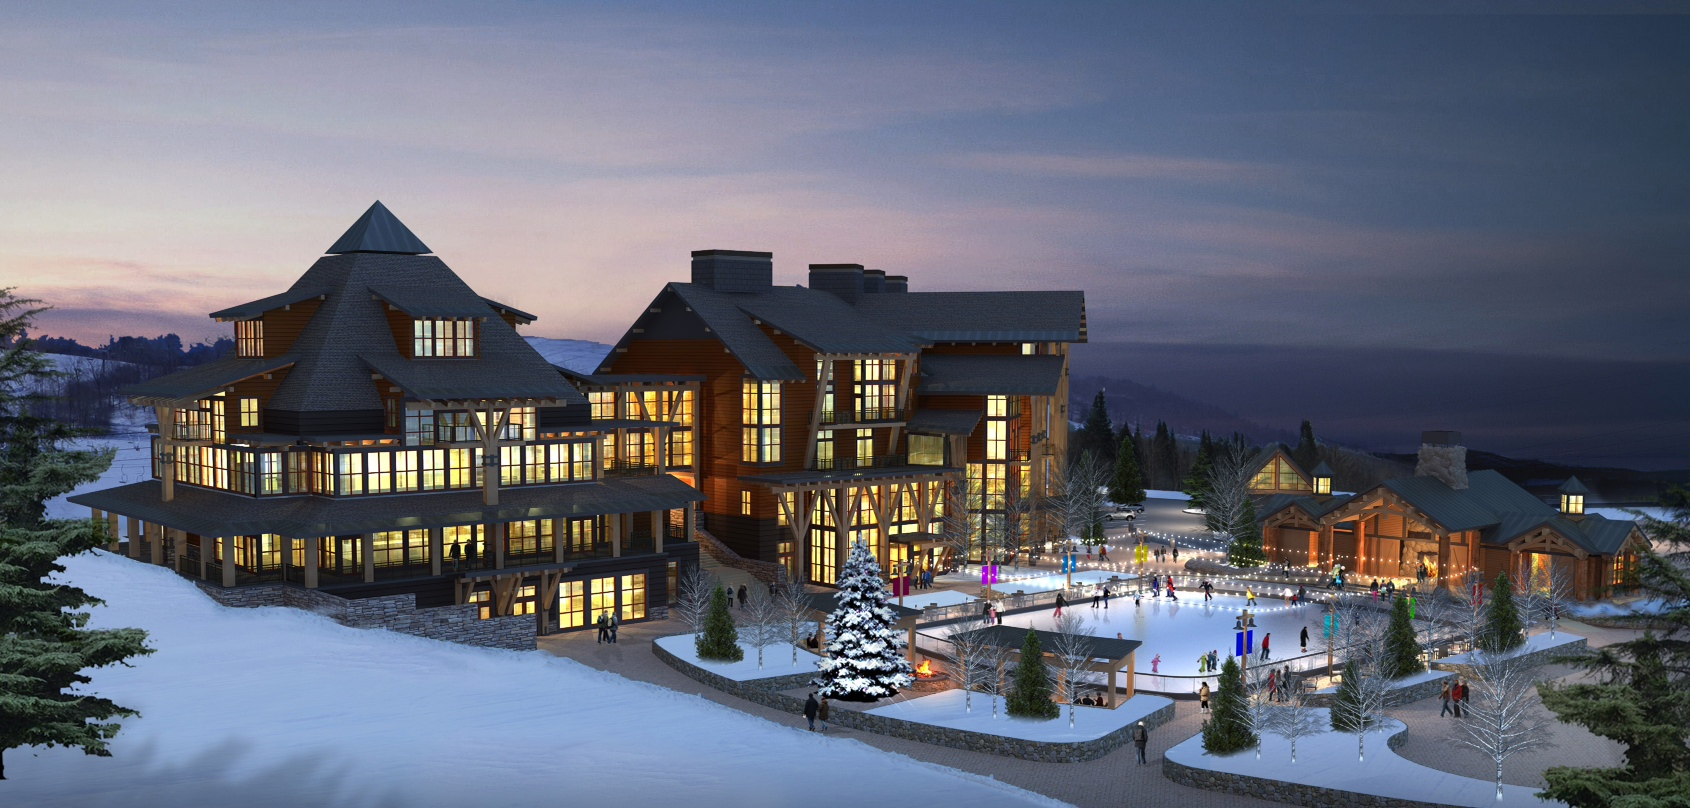 stowe mountain resort announces next major phase of development at